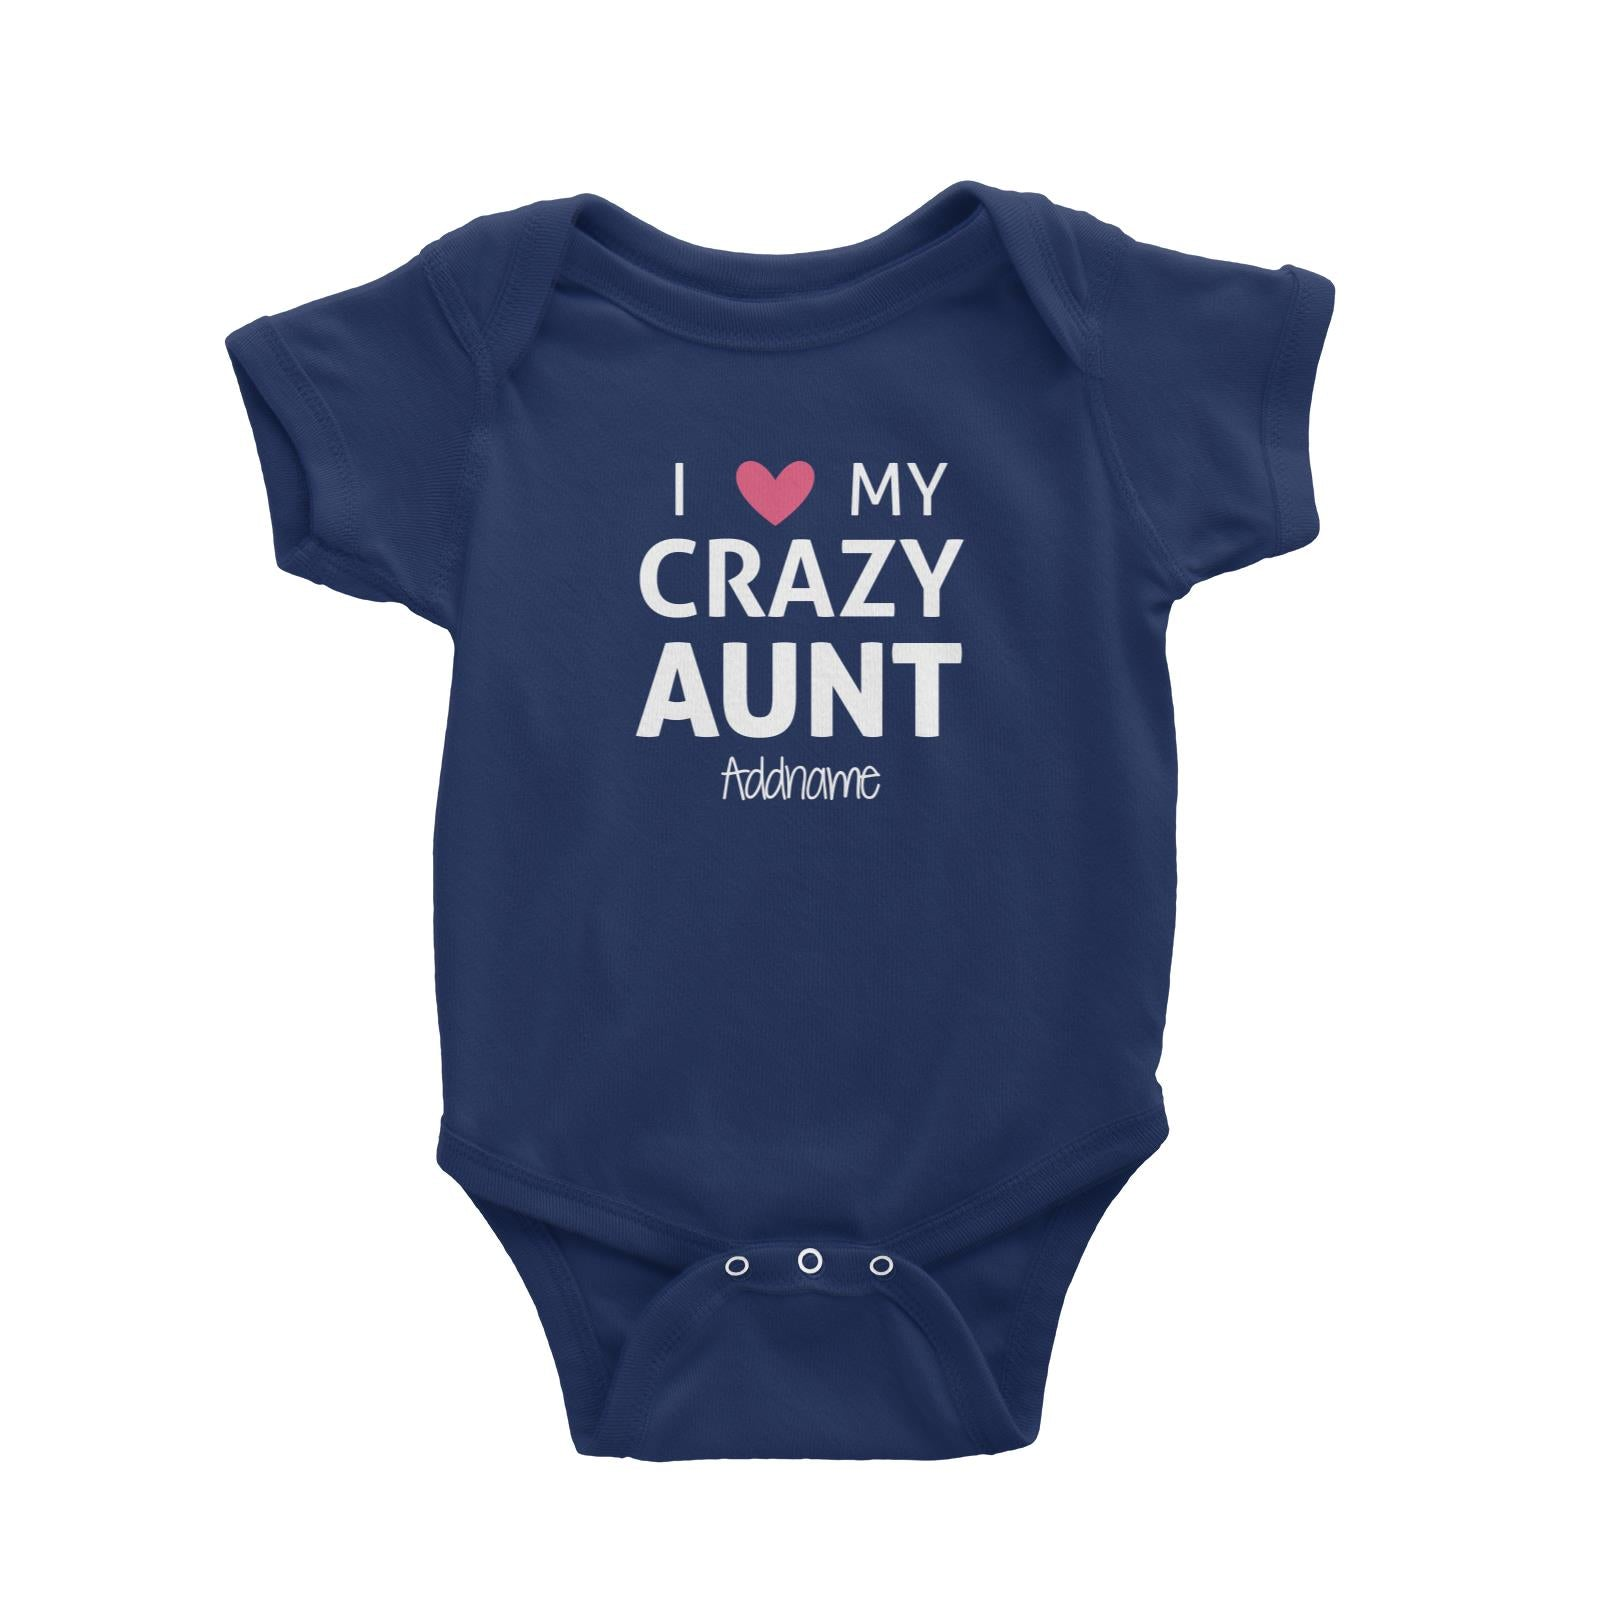 I Love My Crazy Aunt Addname Baby Romper